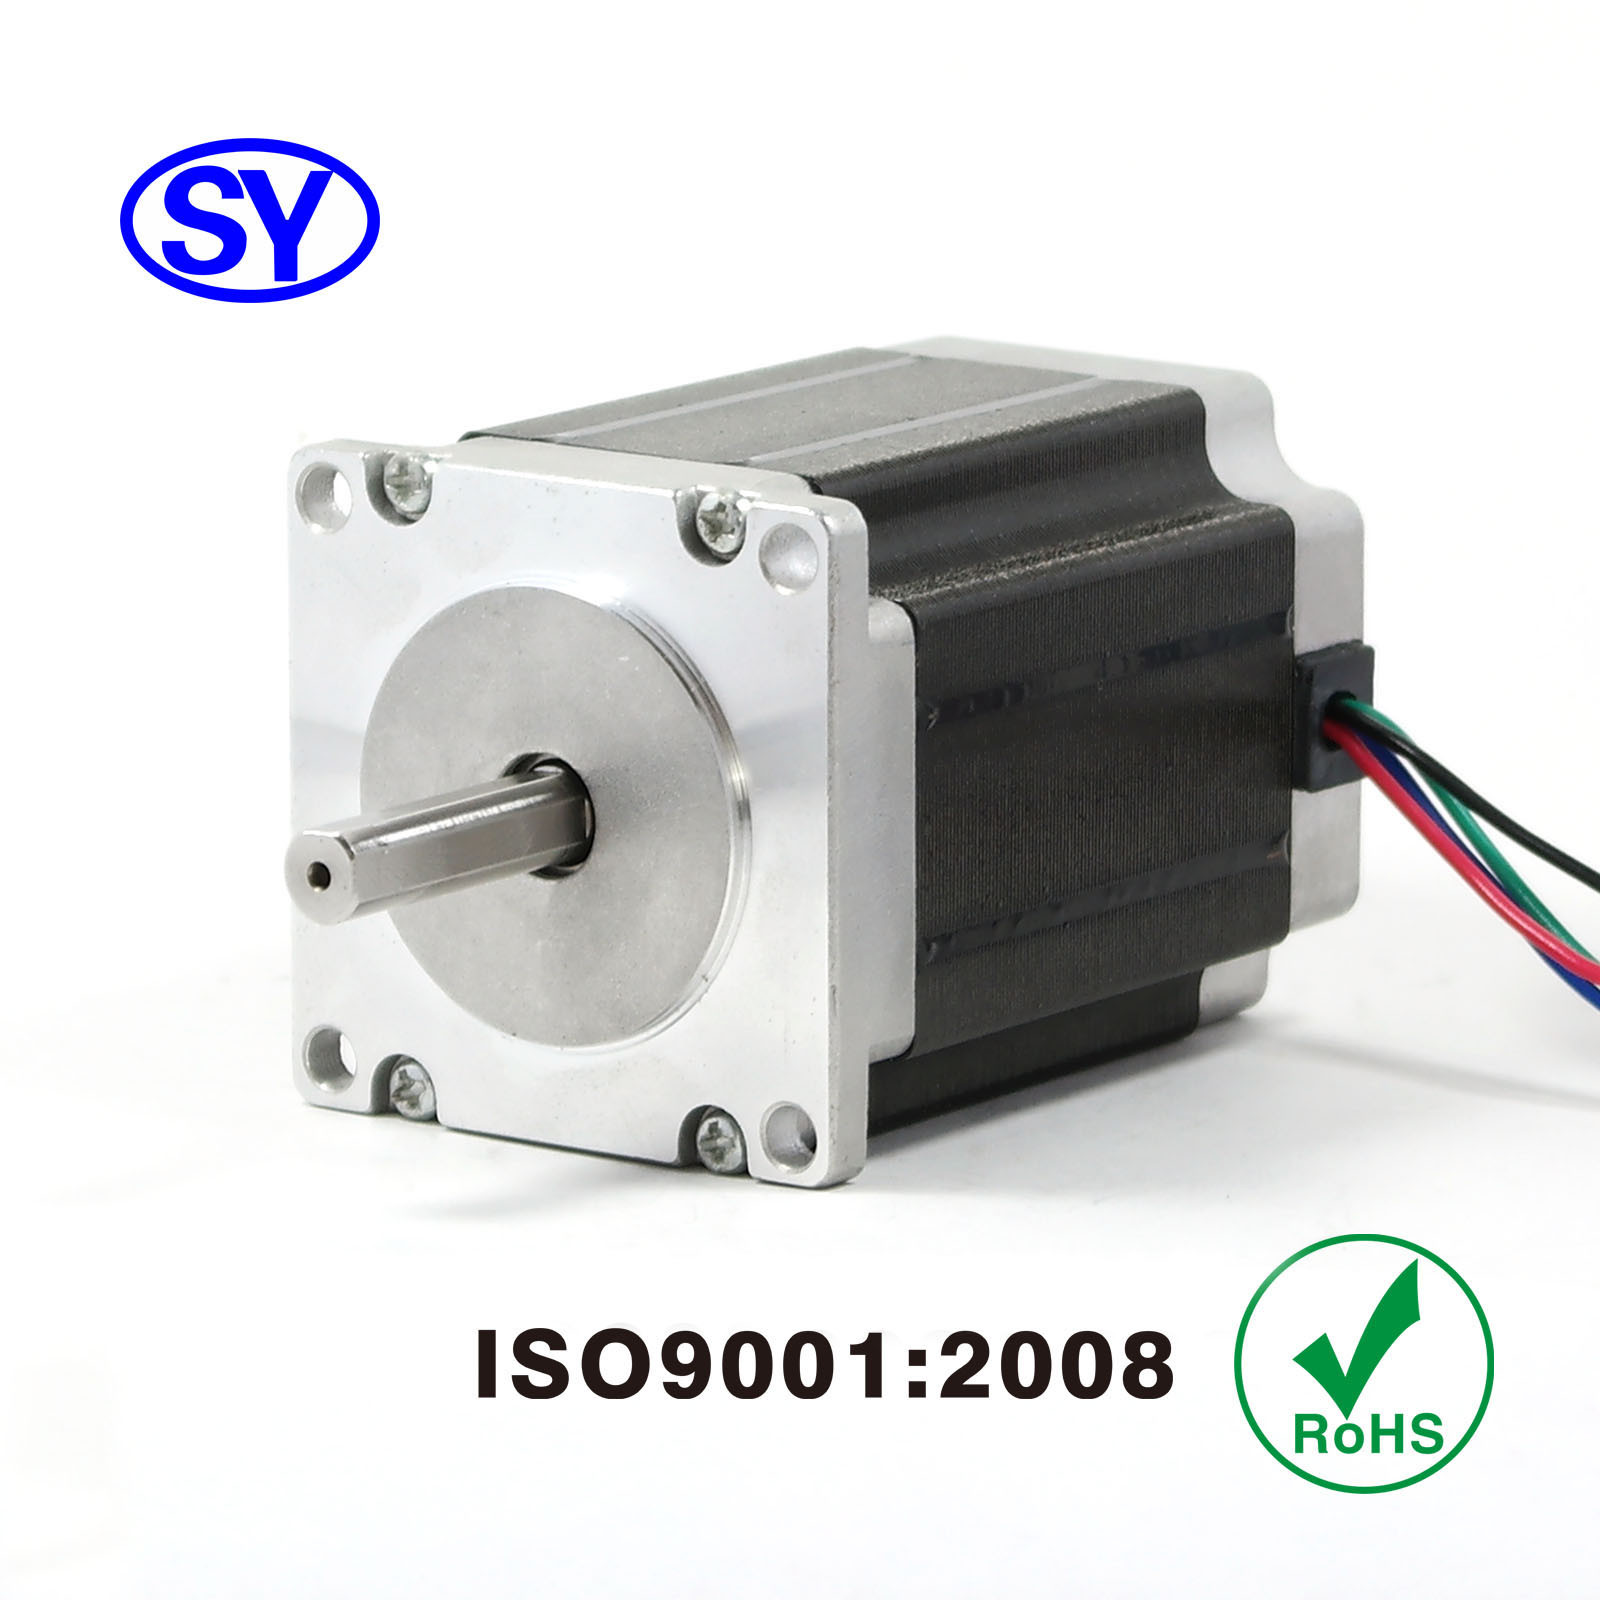 NEMA 23 57*57mm Electrical Stepper Motor for CCTV, Security Monitor